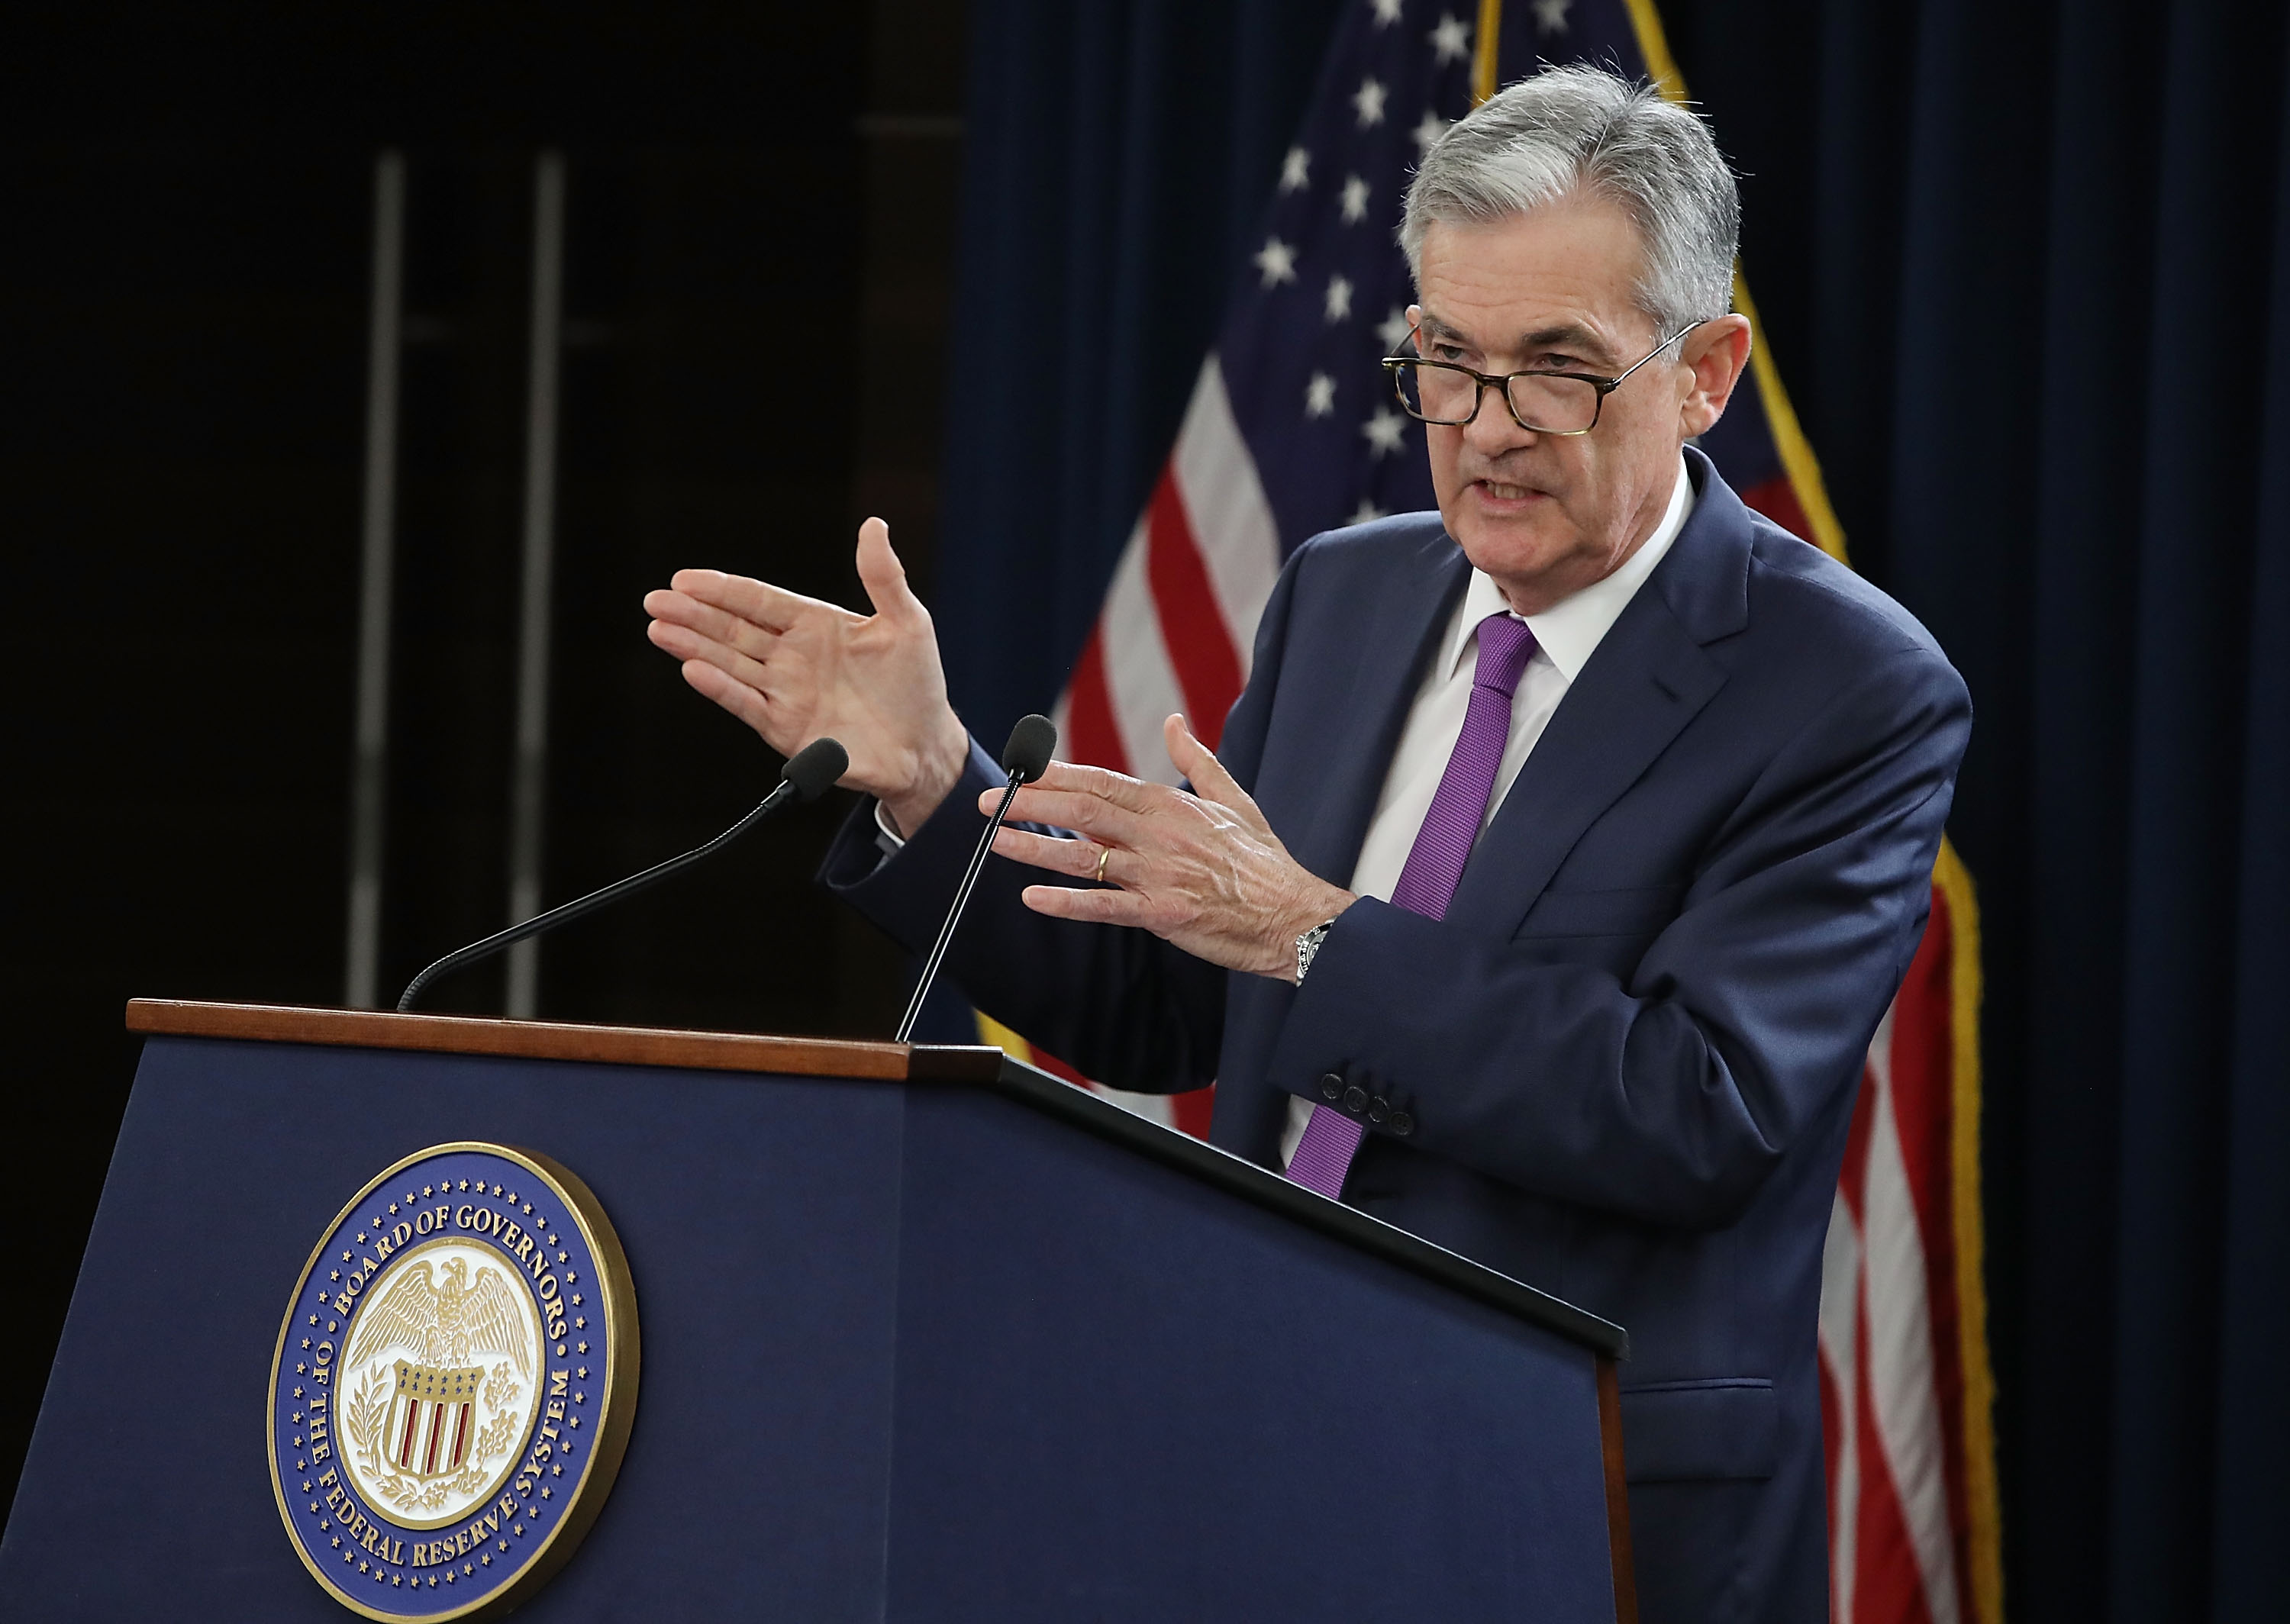 Federal Reserve Chairman Jerome Powell Holds A News Conference Following Federal Open Market Committee Meeting